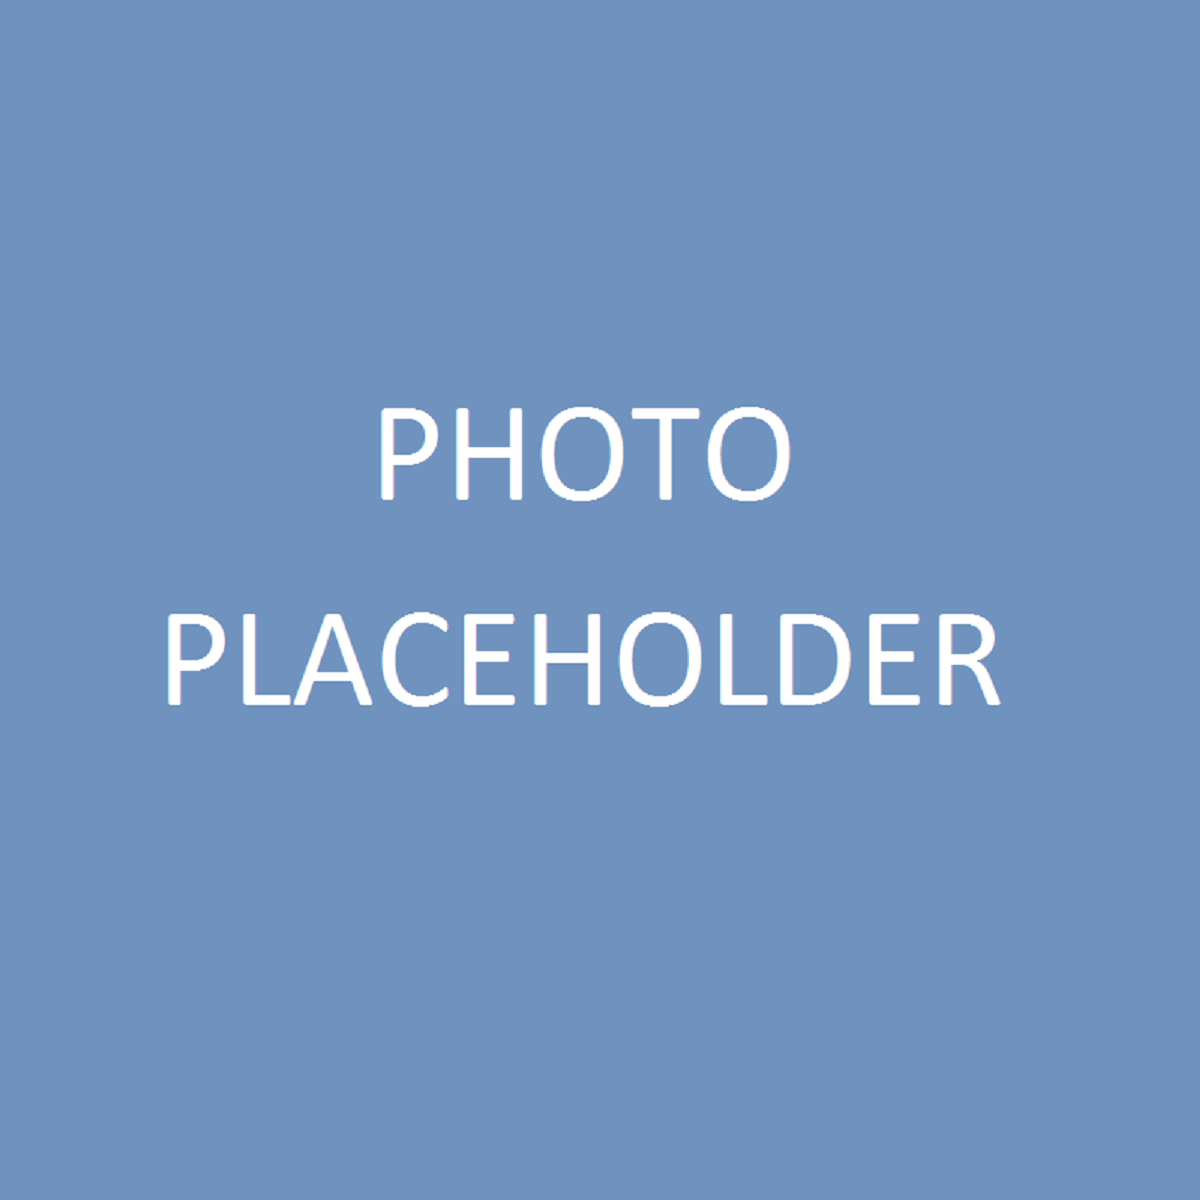 photo placeholder